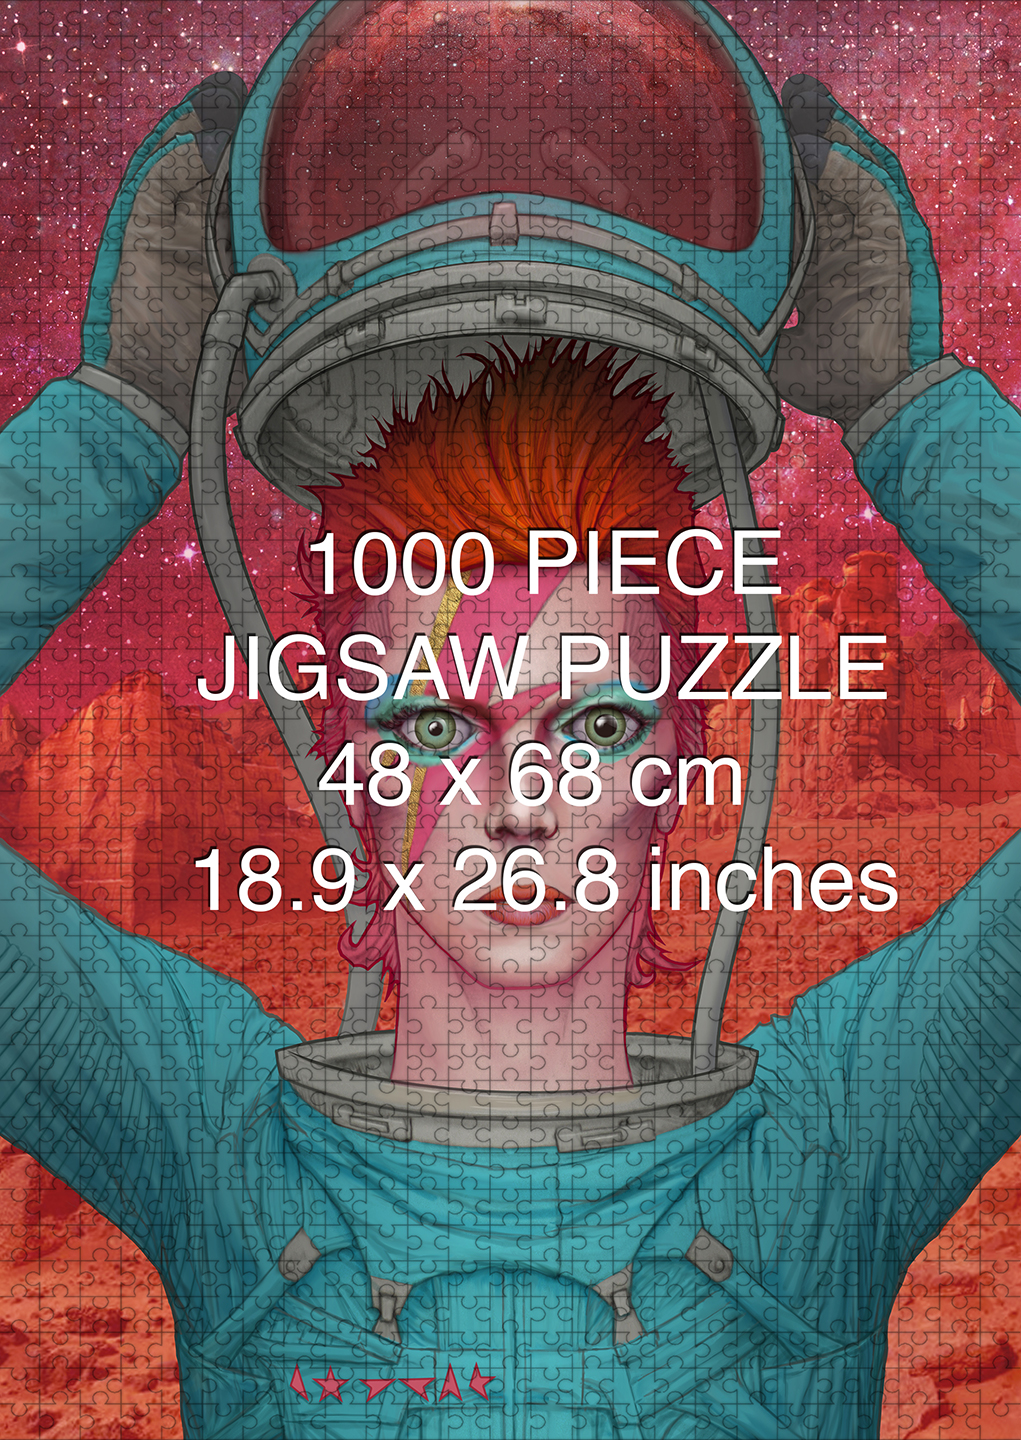 David Bowie: Ziggy Stardust on Mars 1000 piece puzzle by Aaron Wolf and Pandemic Puzzles